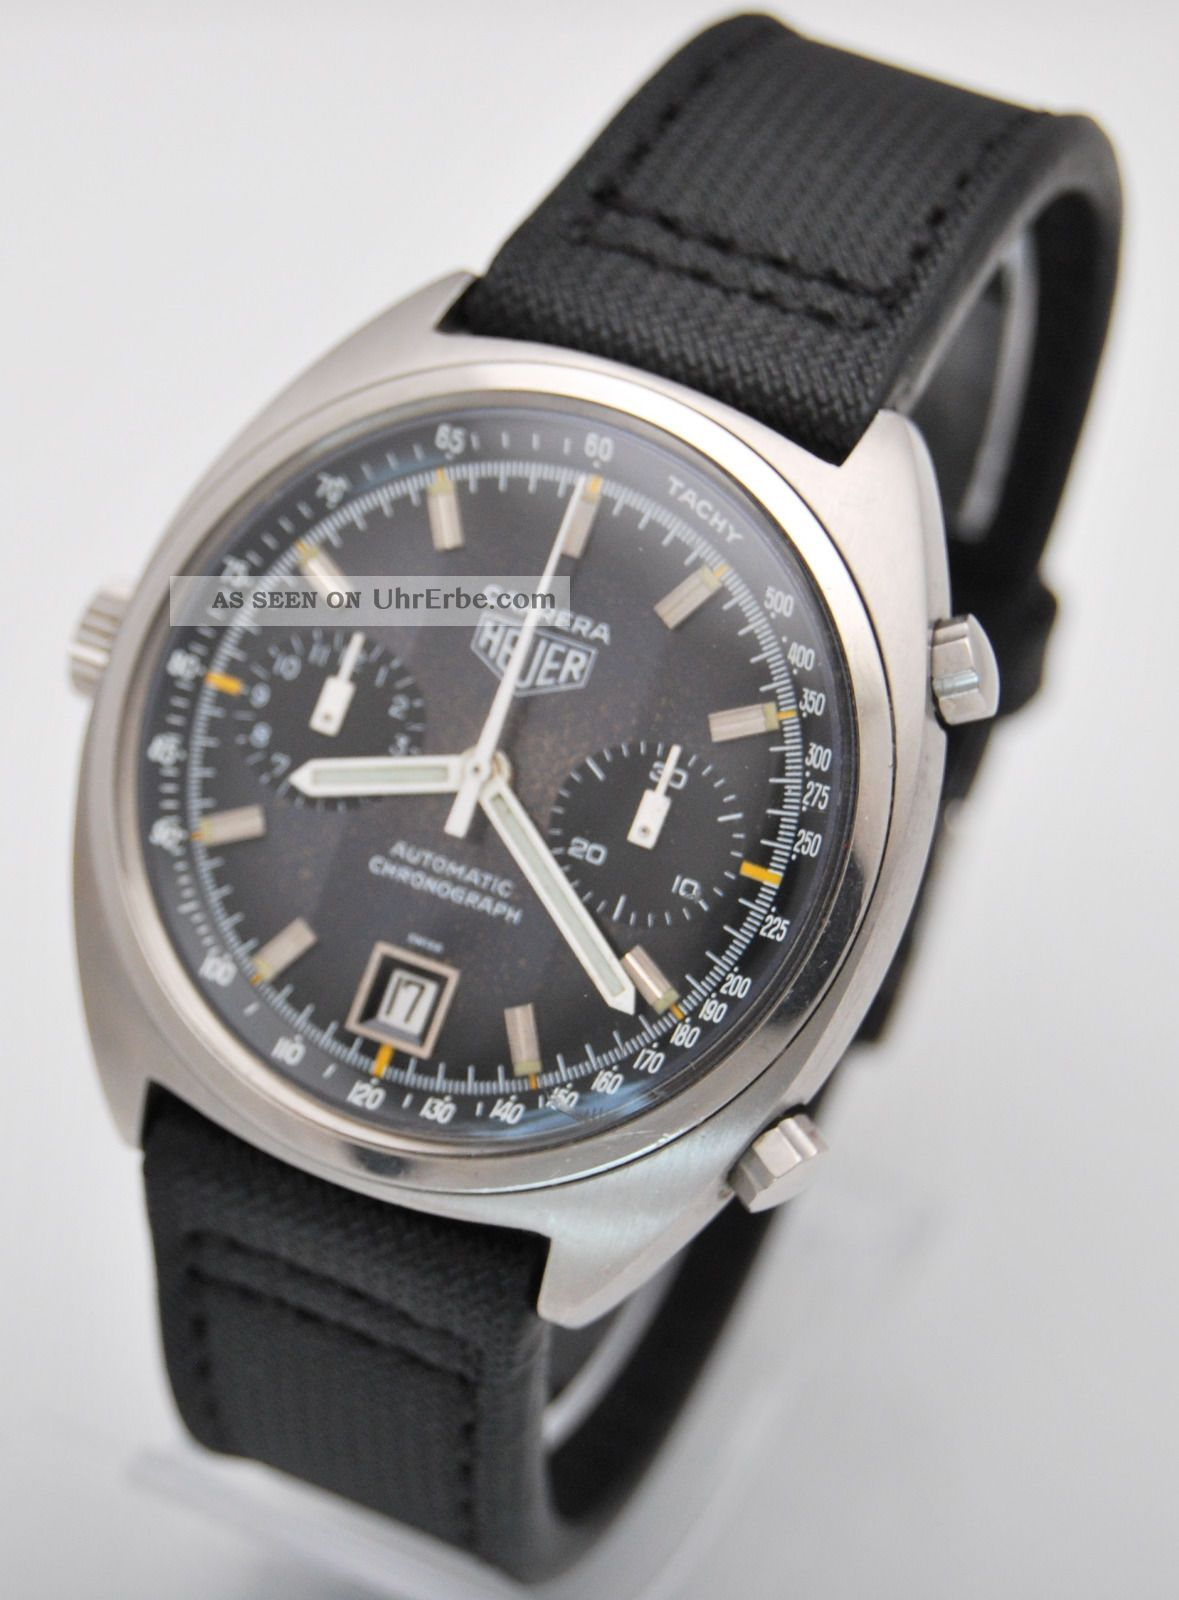 Heuer Carrera Chronograph,  Ref.  110.  253,  Cal 12 Movement.  2 Register & Date Rare Armbanduhren Bild